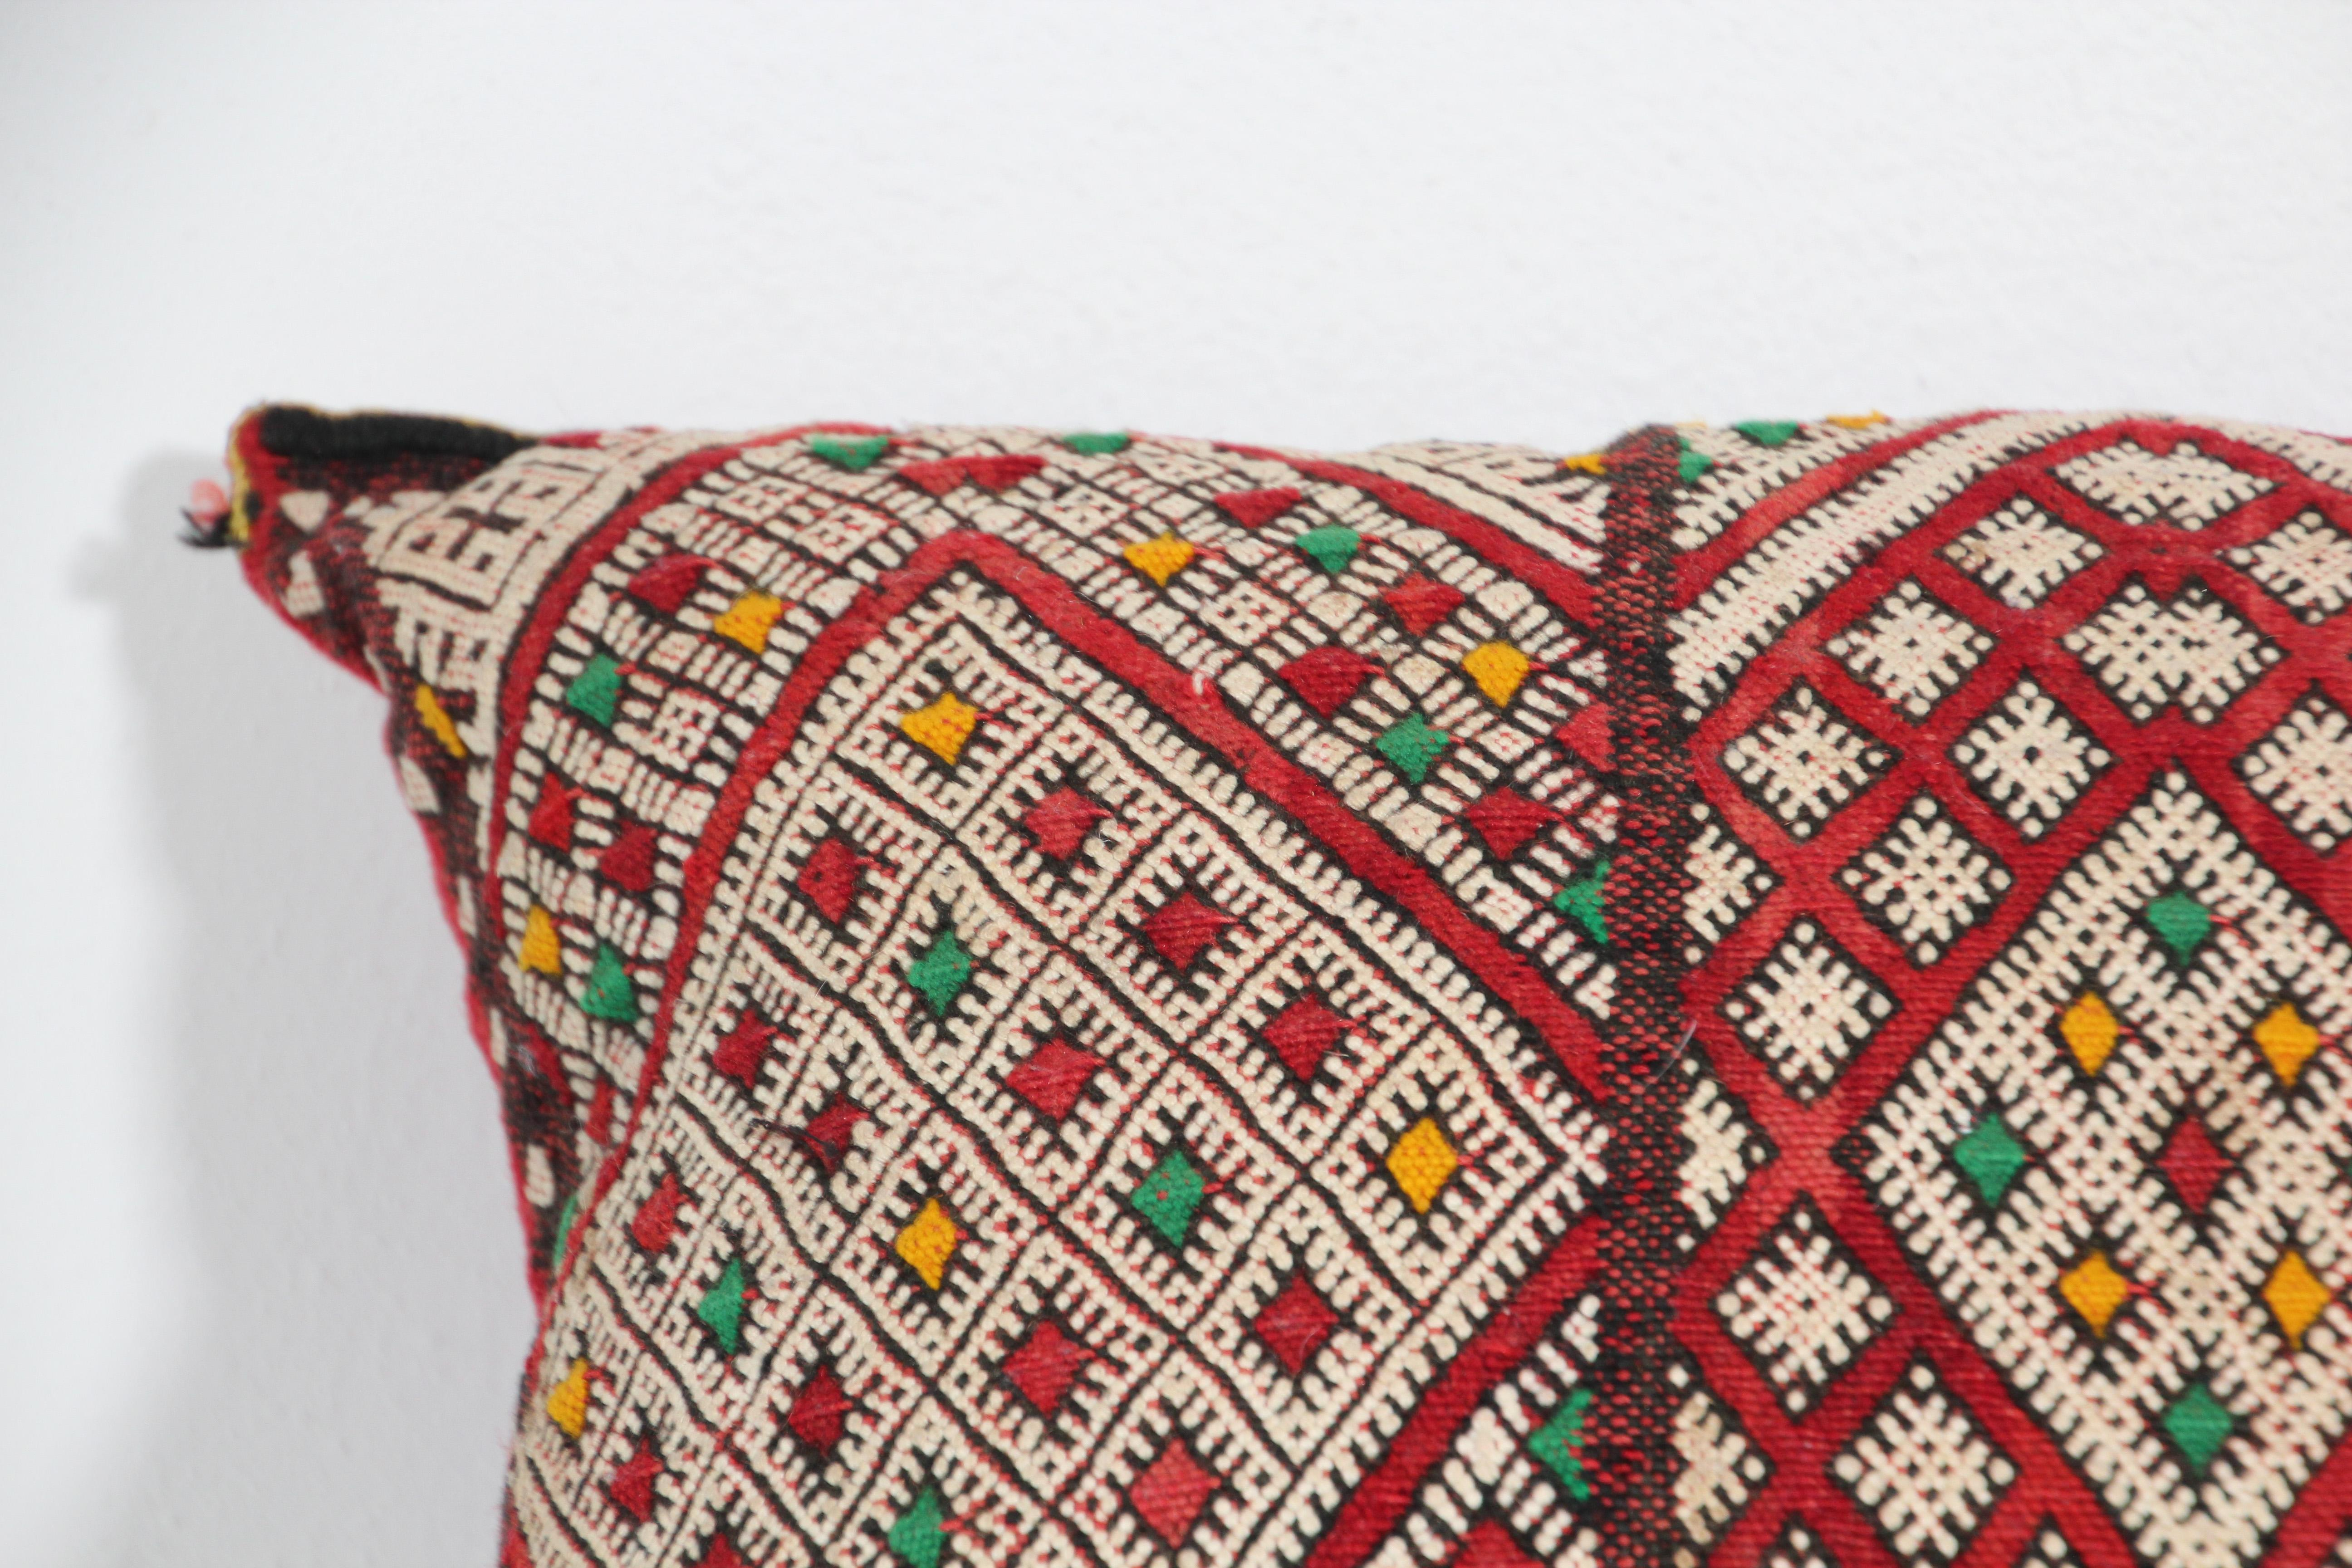 Vintage Moroccan African Tribal Berber Pillow cover c.1960 new Never Used 24 x 18